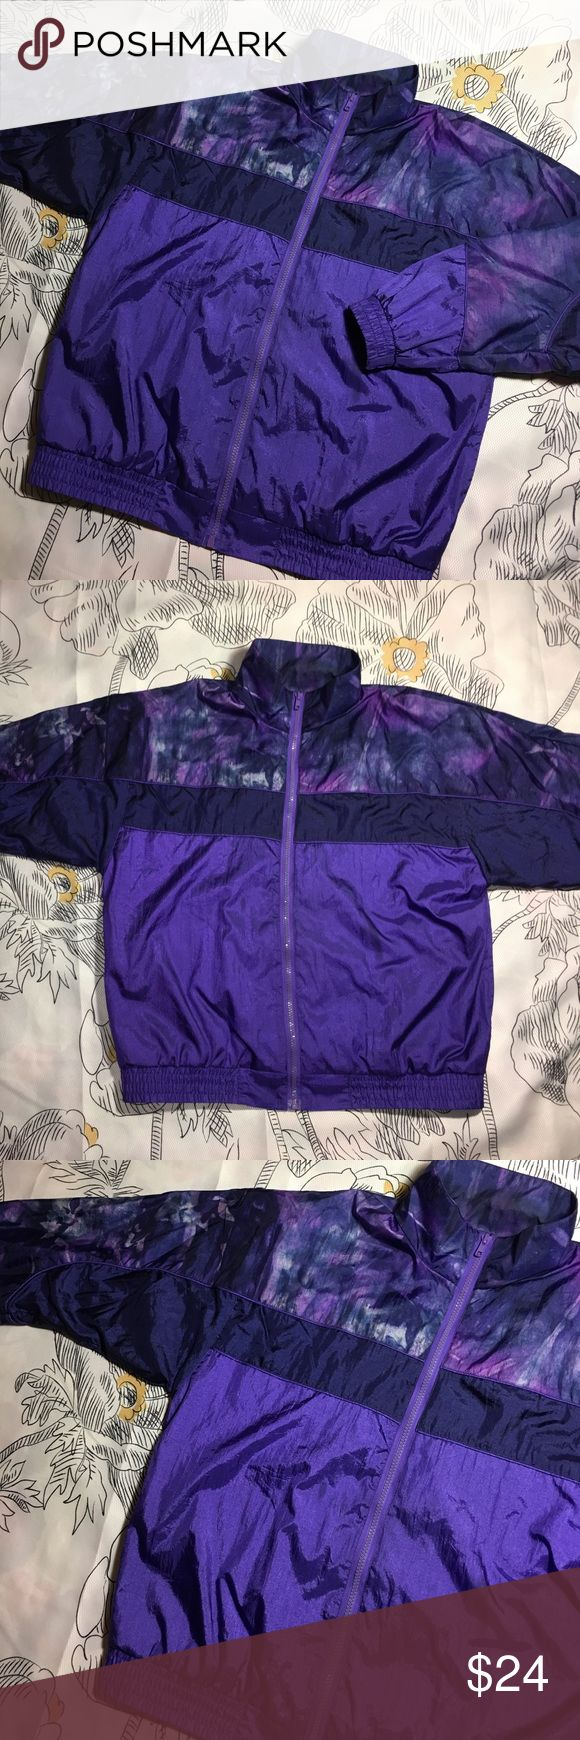 Vintage Windbreaker Jacket x Athletic Track x 90s Size Medium - Condition excellent 9.5/10 lavon Jackets & Coats